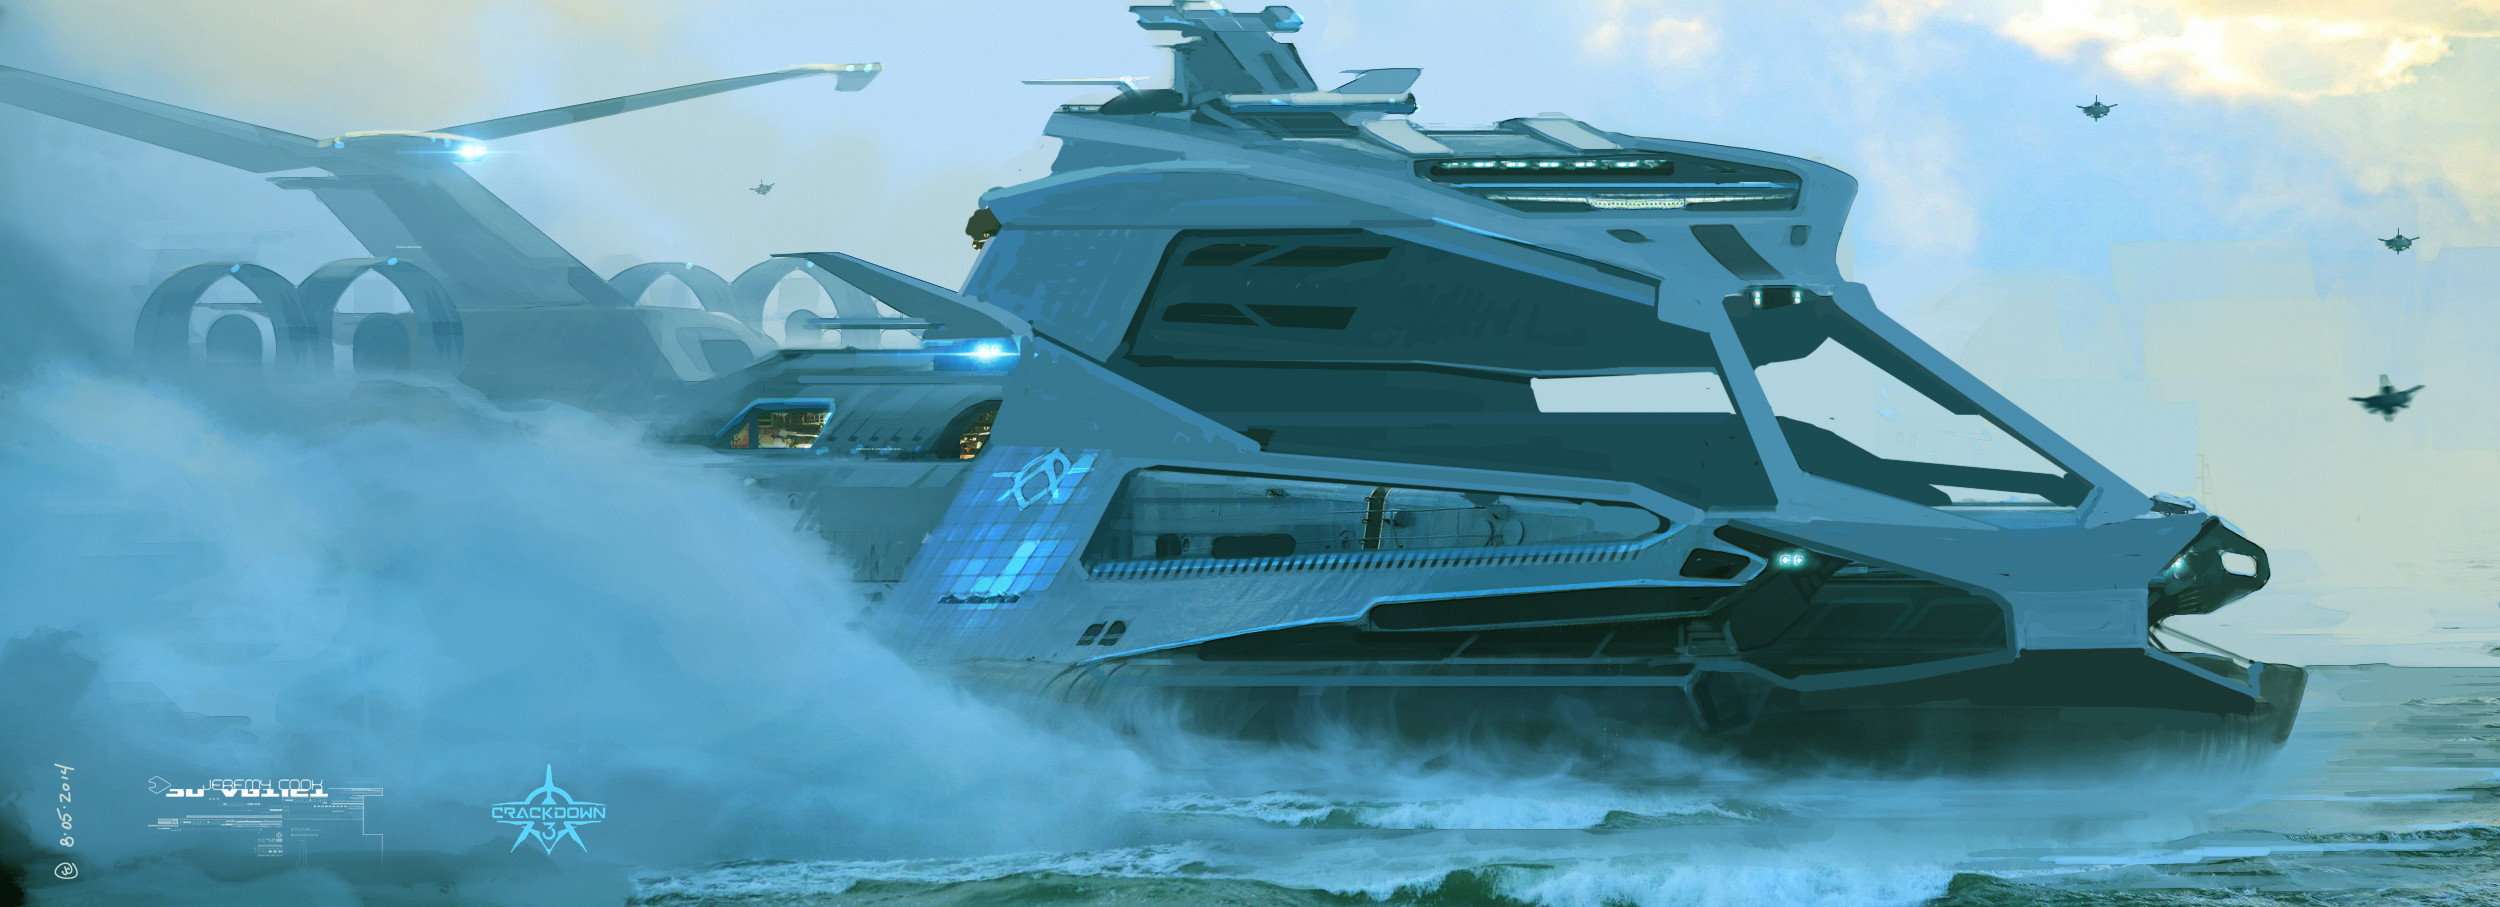 Early concept for Agency super carrier (water based)